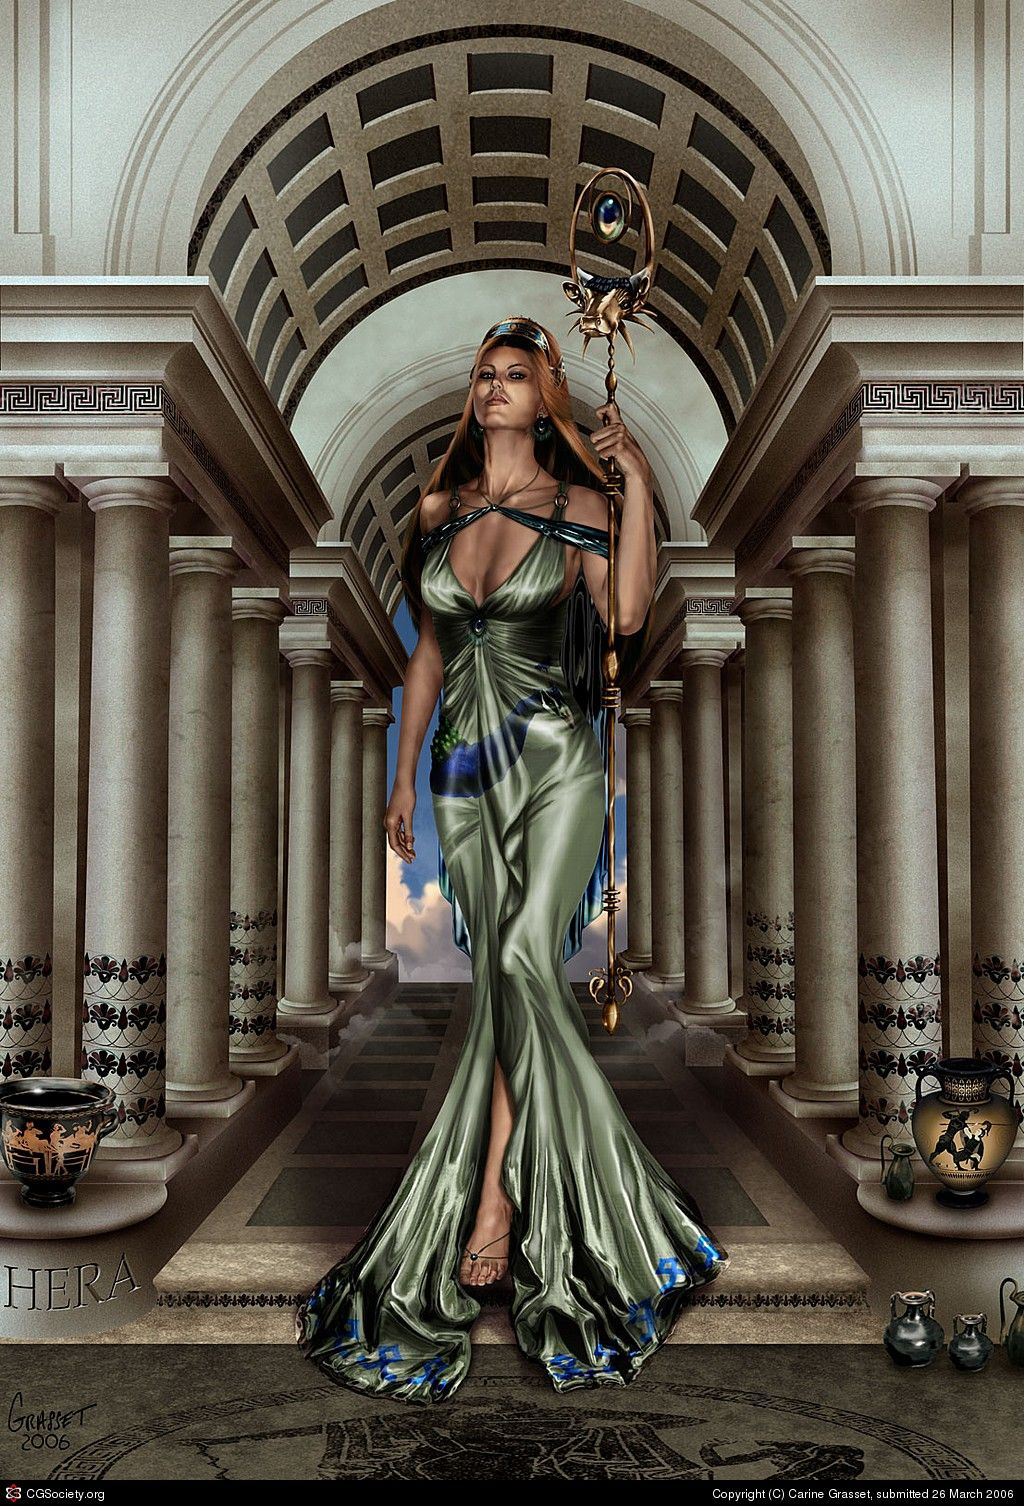 Pin By Heather H On Fantasy Art